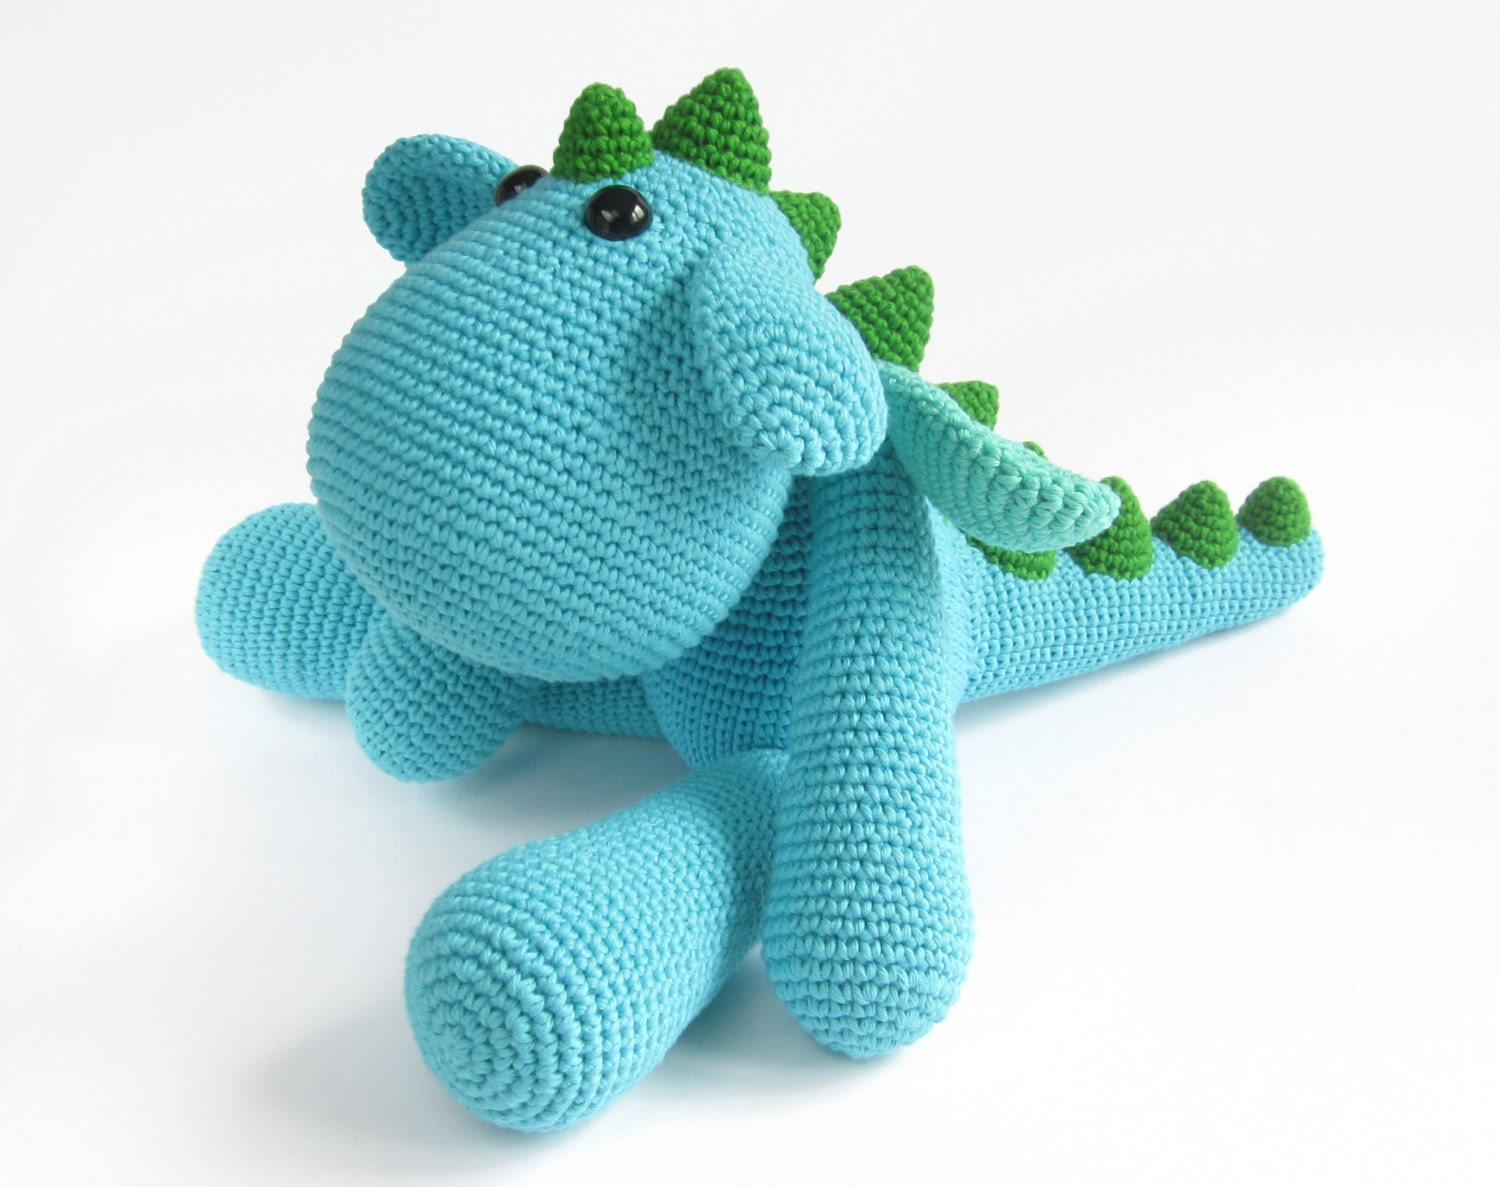 Crochet Patterns Dragon : PATTERN: Dragon Crochet pattern Dinosaur Stuffed animal Etsy